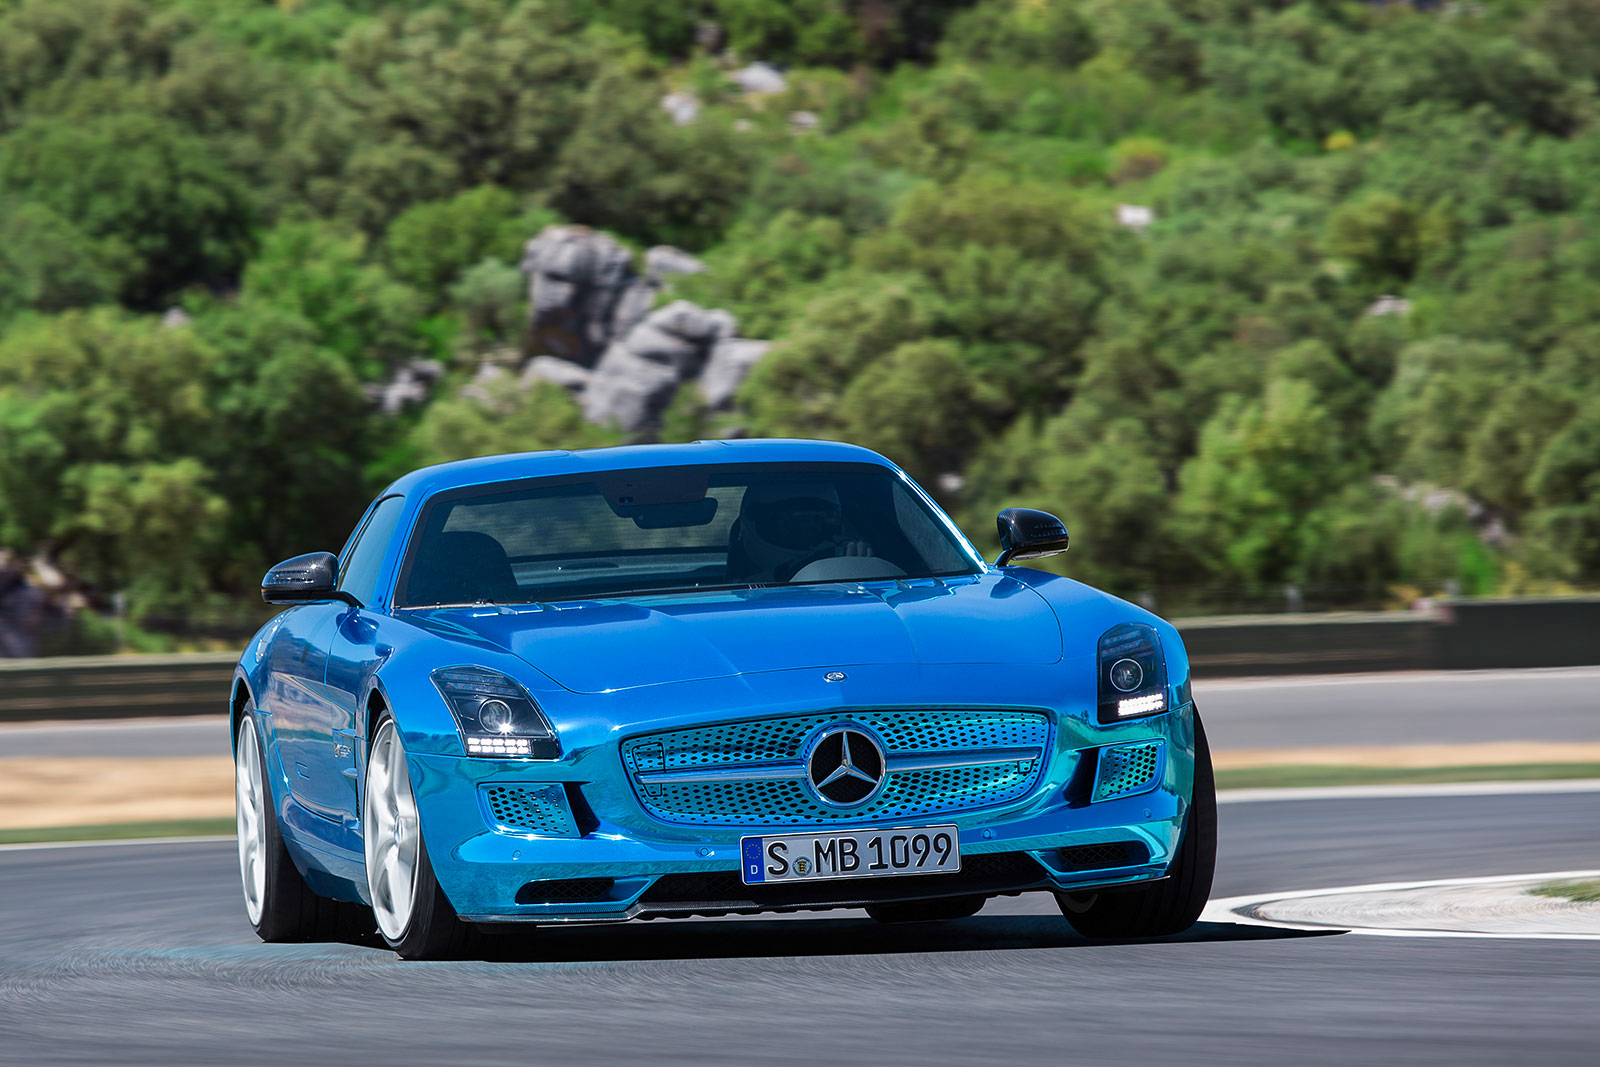 Electric vehicle news for Mercedes benz electric sls